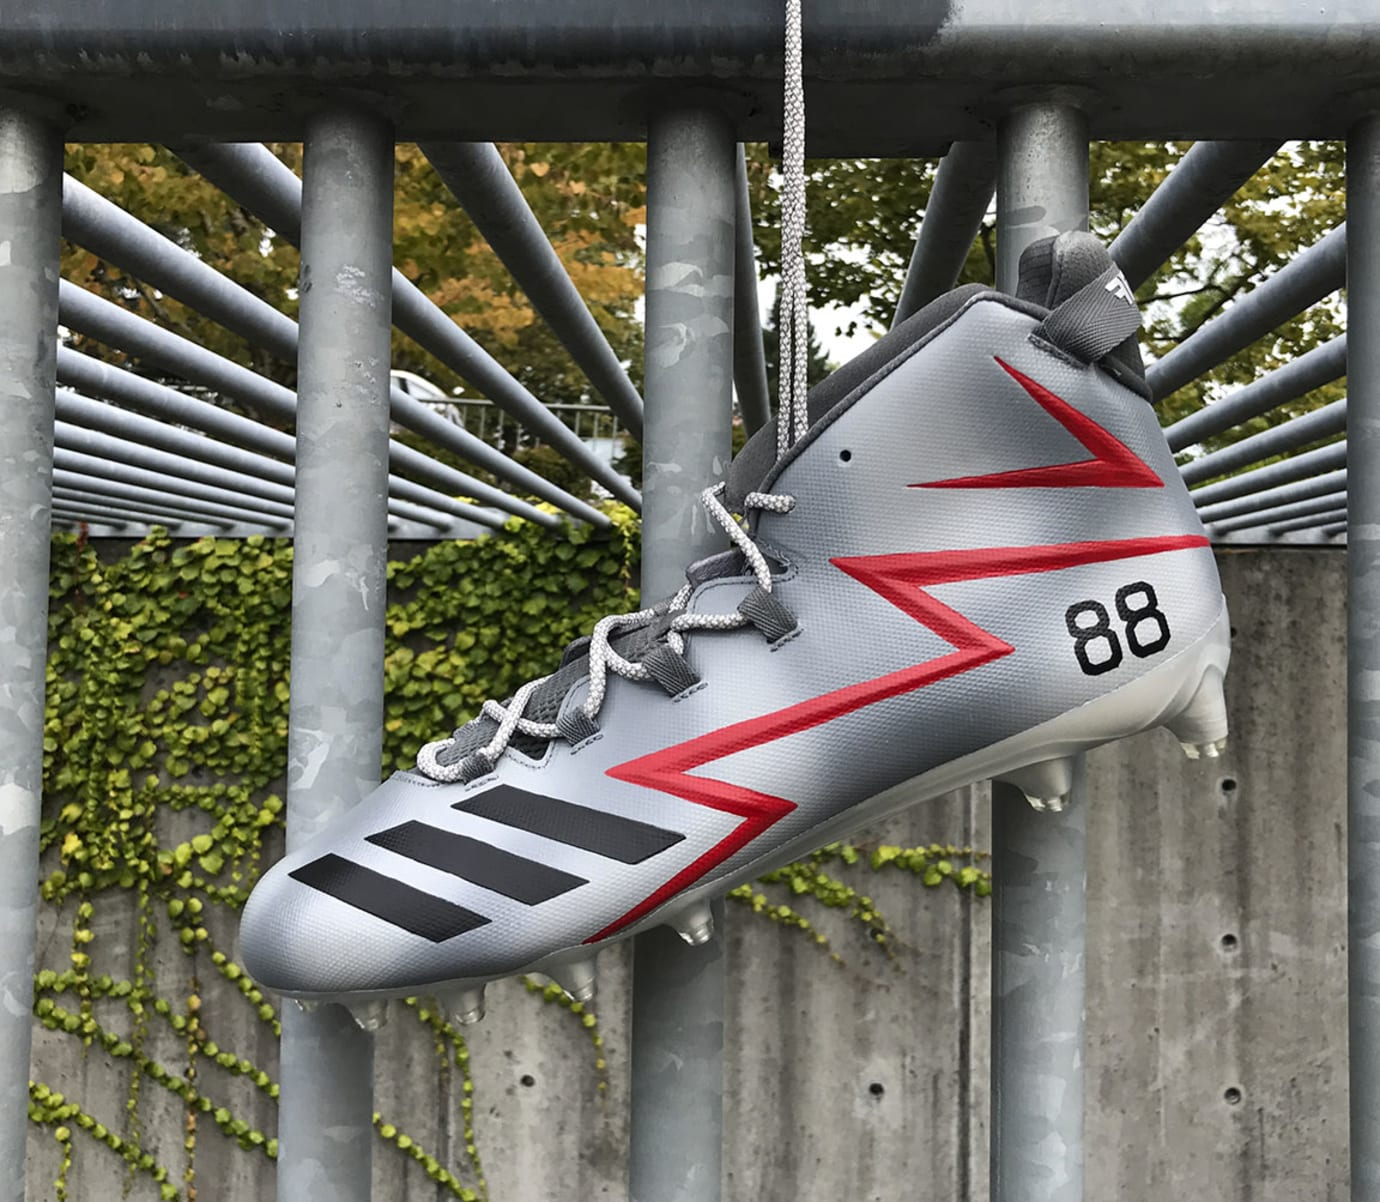 Adidas Call of Duty Cleats Jimmy Graham